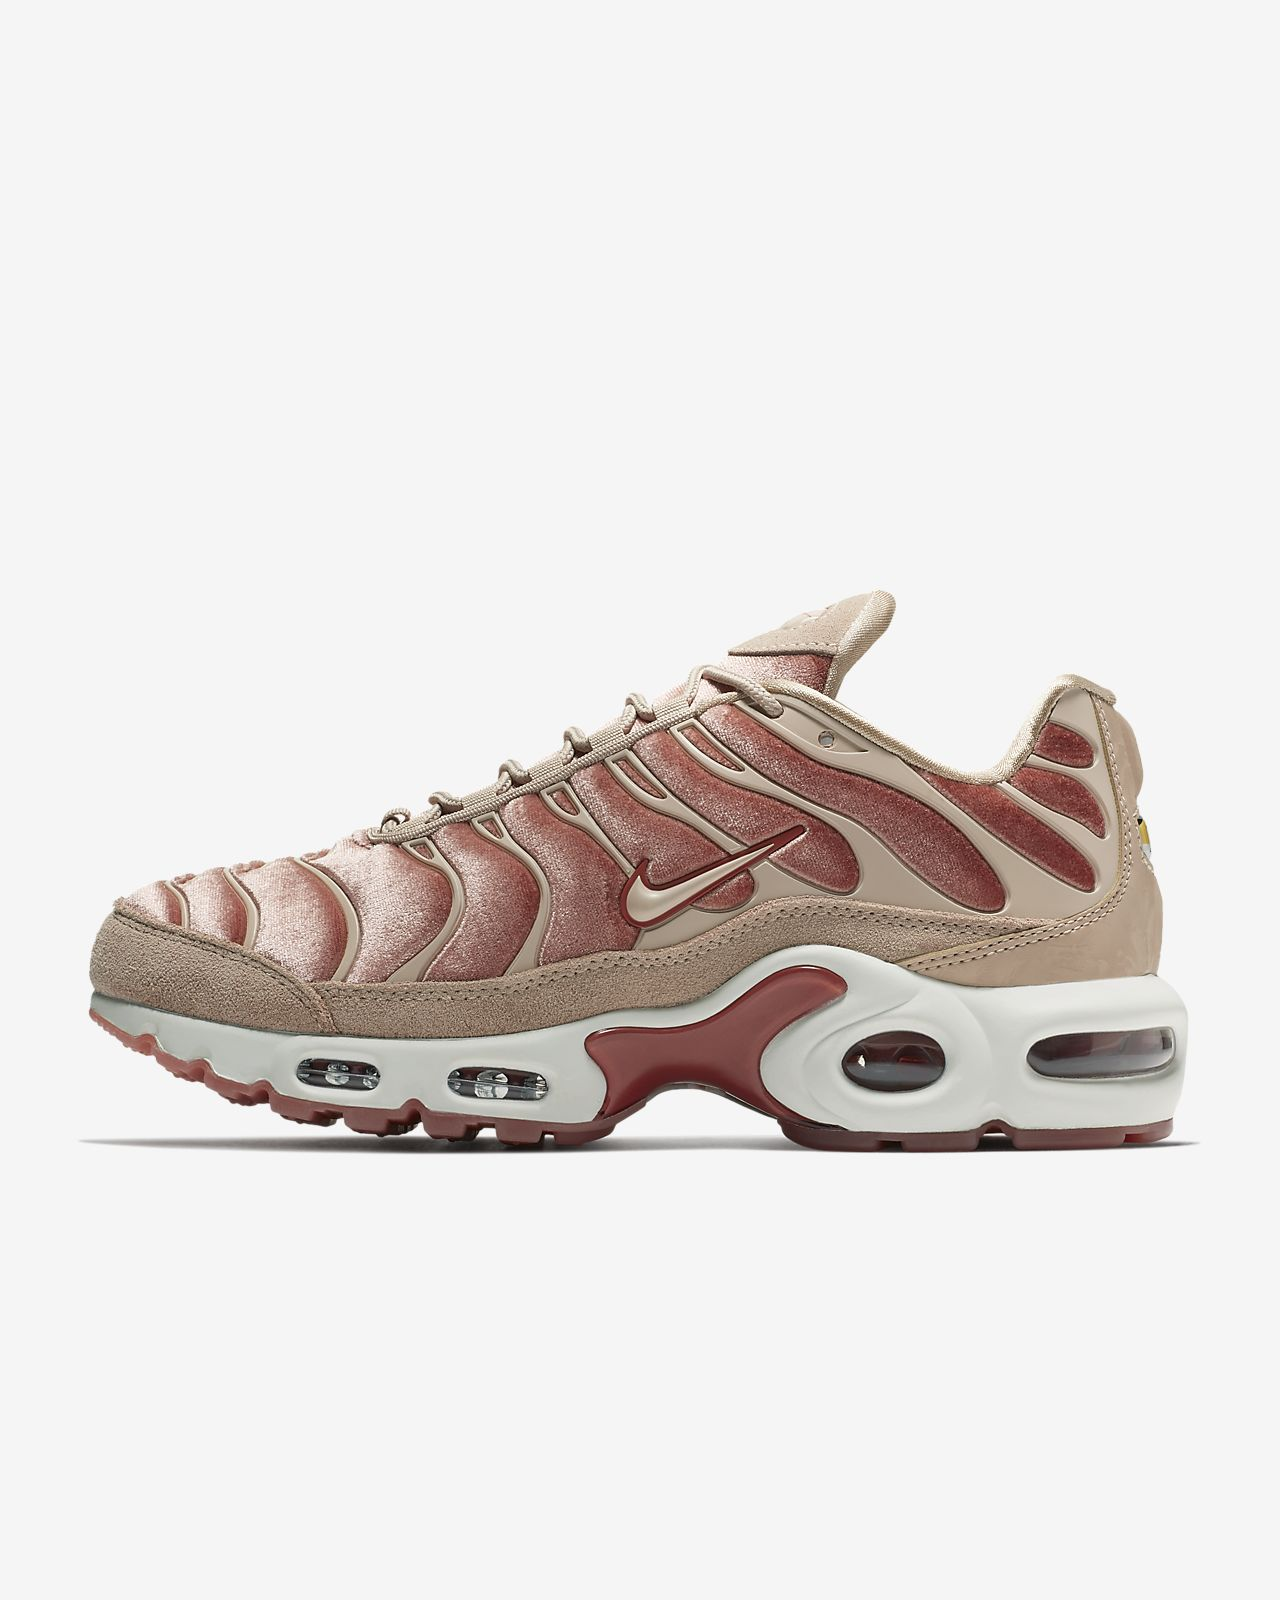 Nike Air Max Plus Womens Size 7.5 White Pink Running Shoes Sneakers